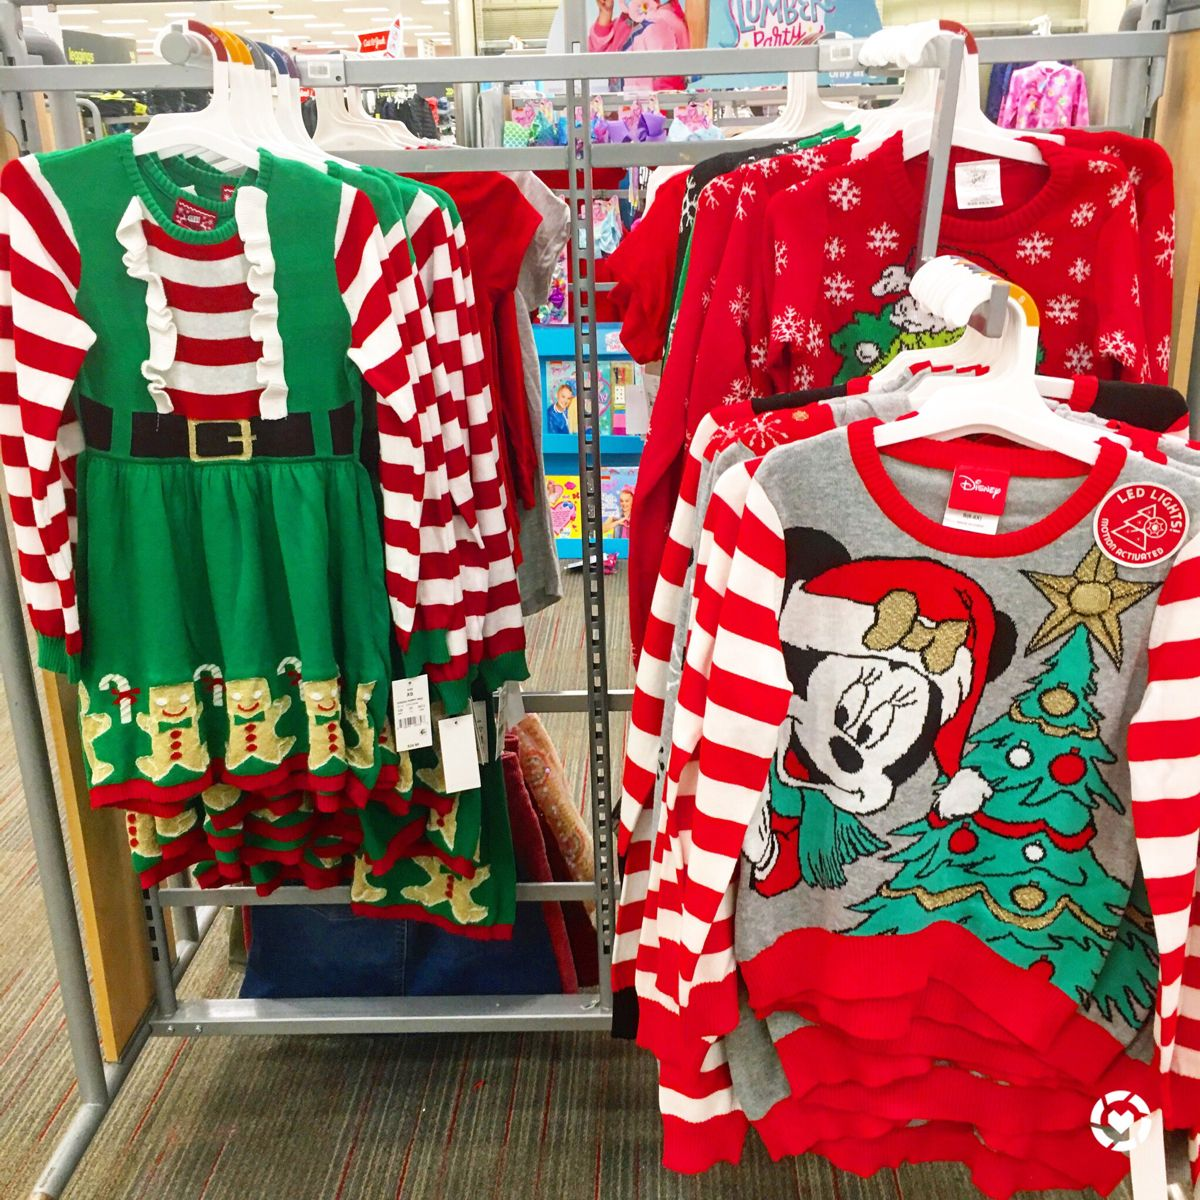 Girls Christmas Dresses and Sweaters. Cute. Fashion. #christmas #fashion #christmasstyle #uglychristmassweater #minnie #grinch #target #targetfinds #targetstyle #kidsstyle